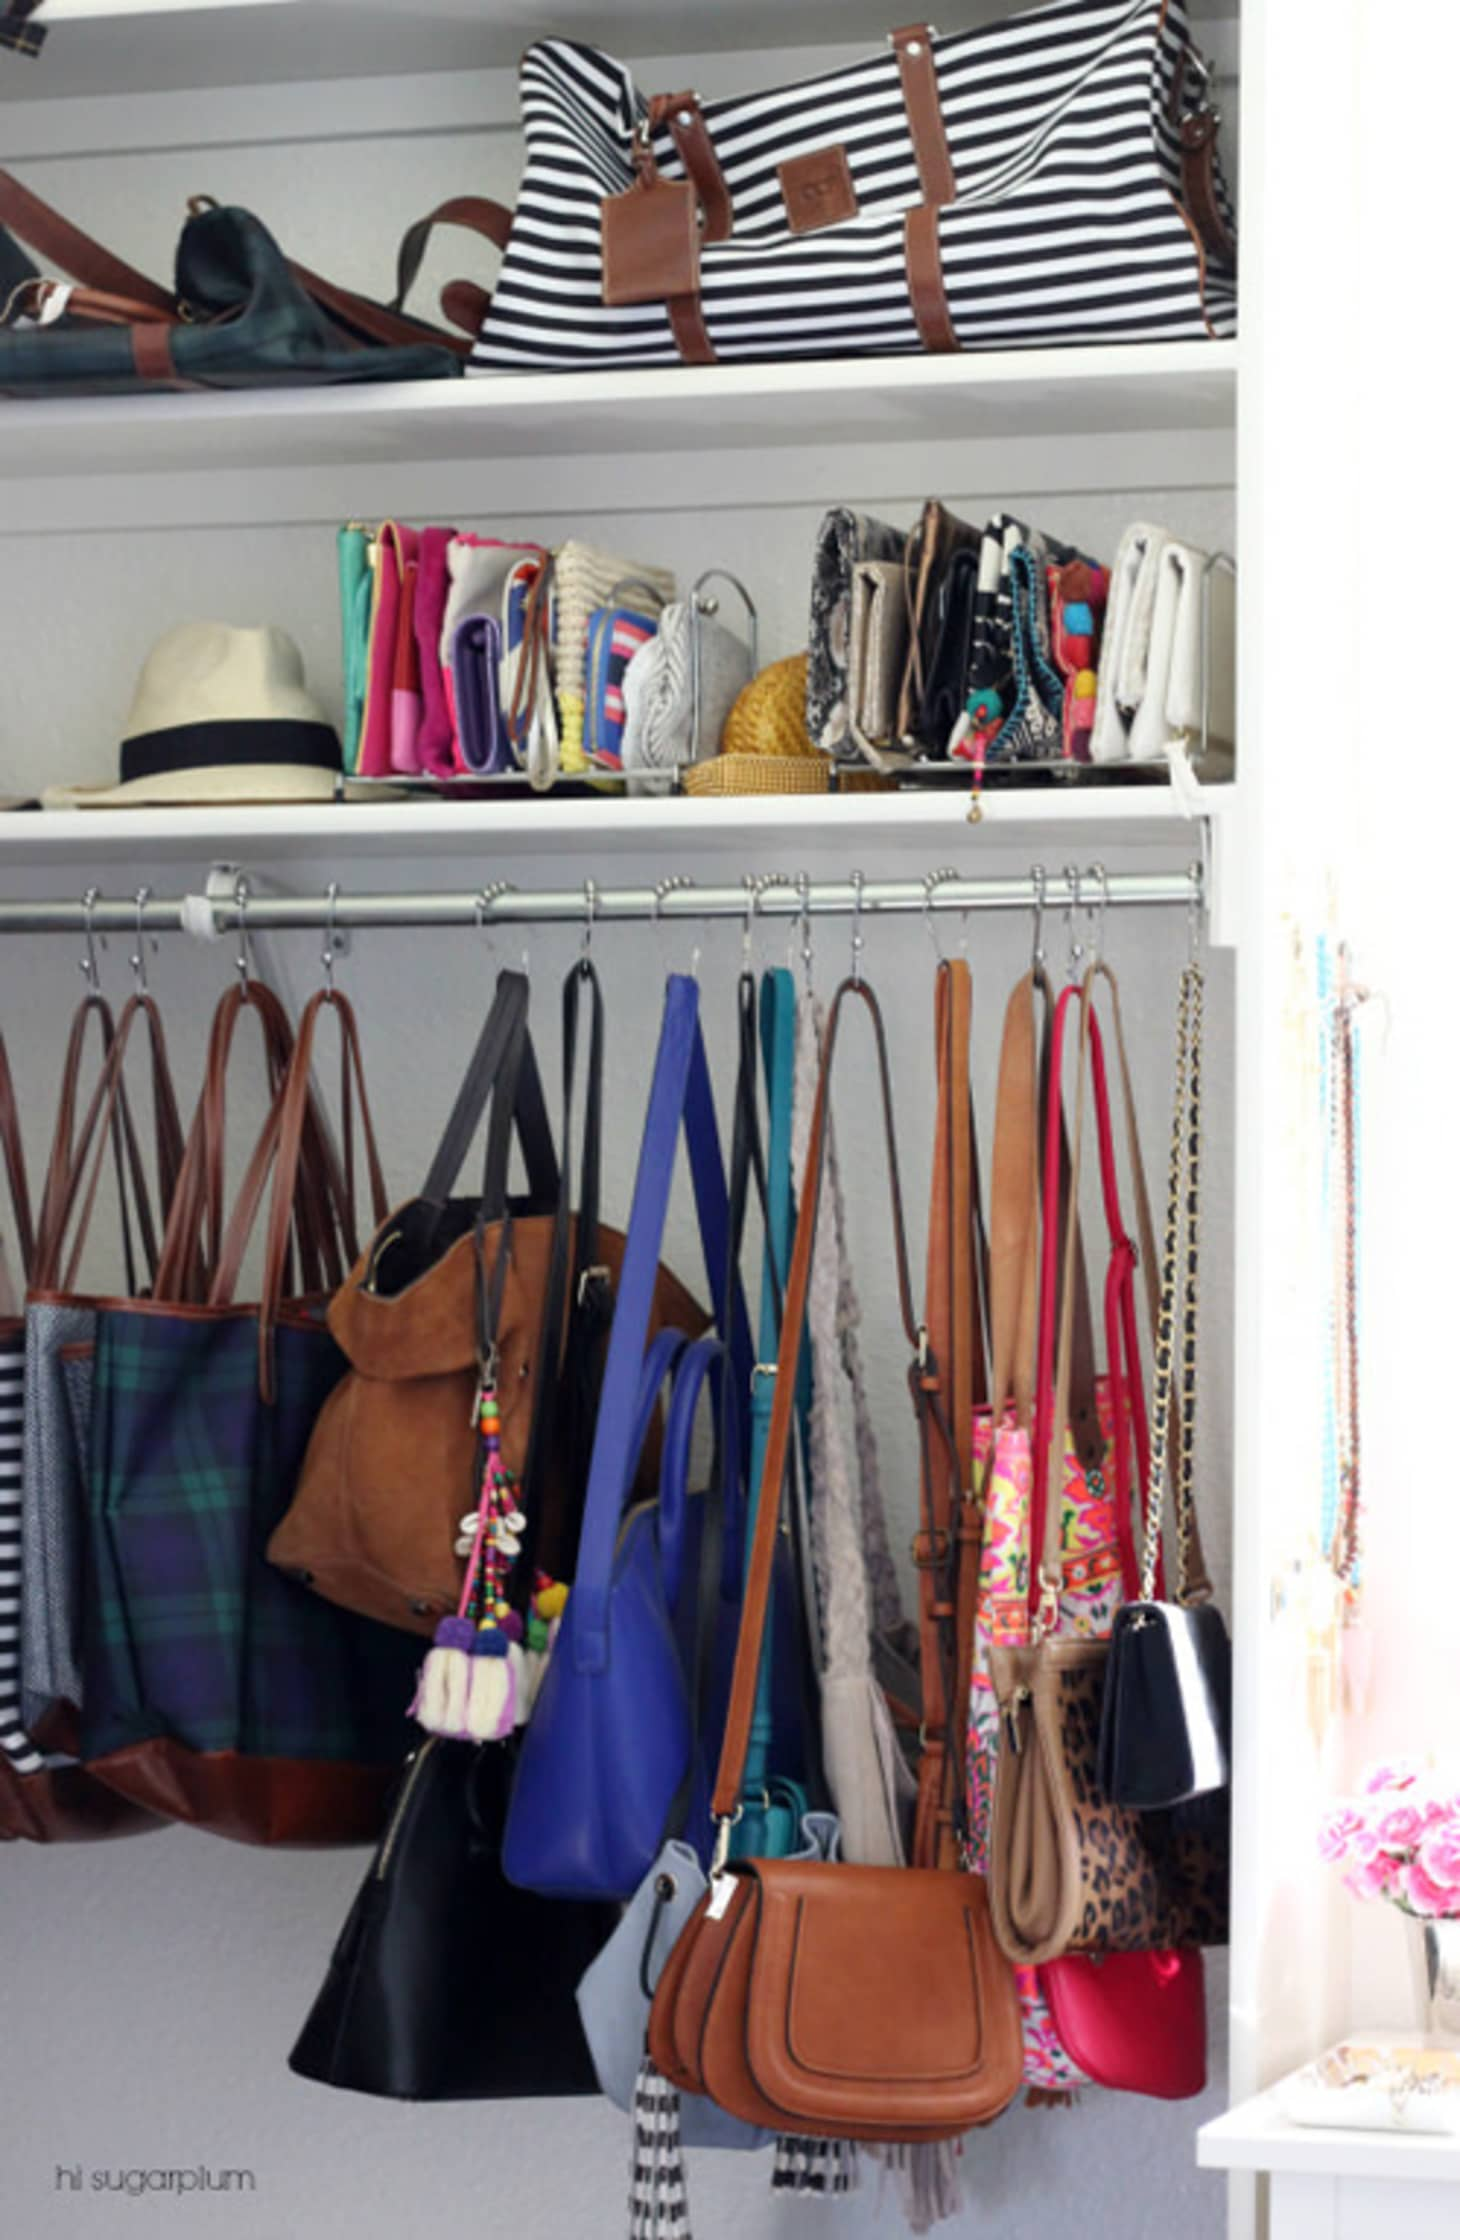 582c9ee1b4a9 Purse Storage Options to Buy or DIY | Apartment Therapy